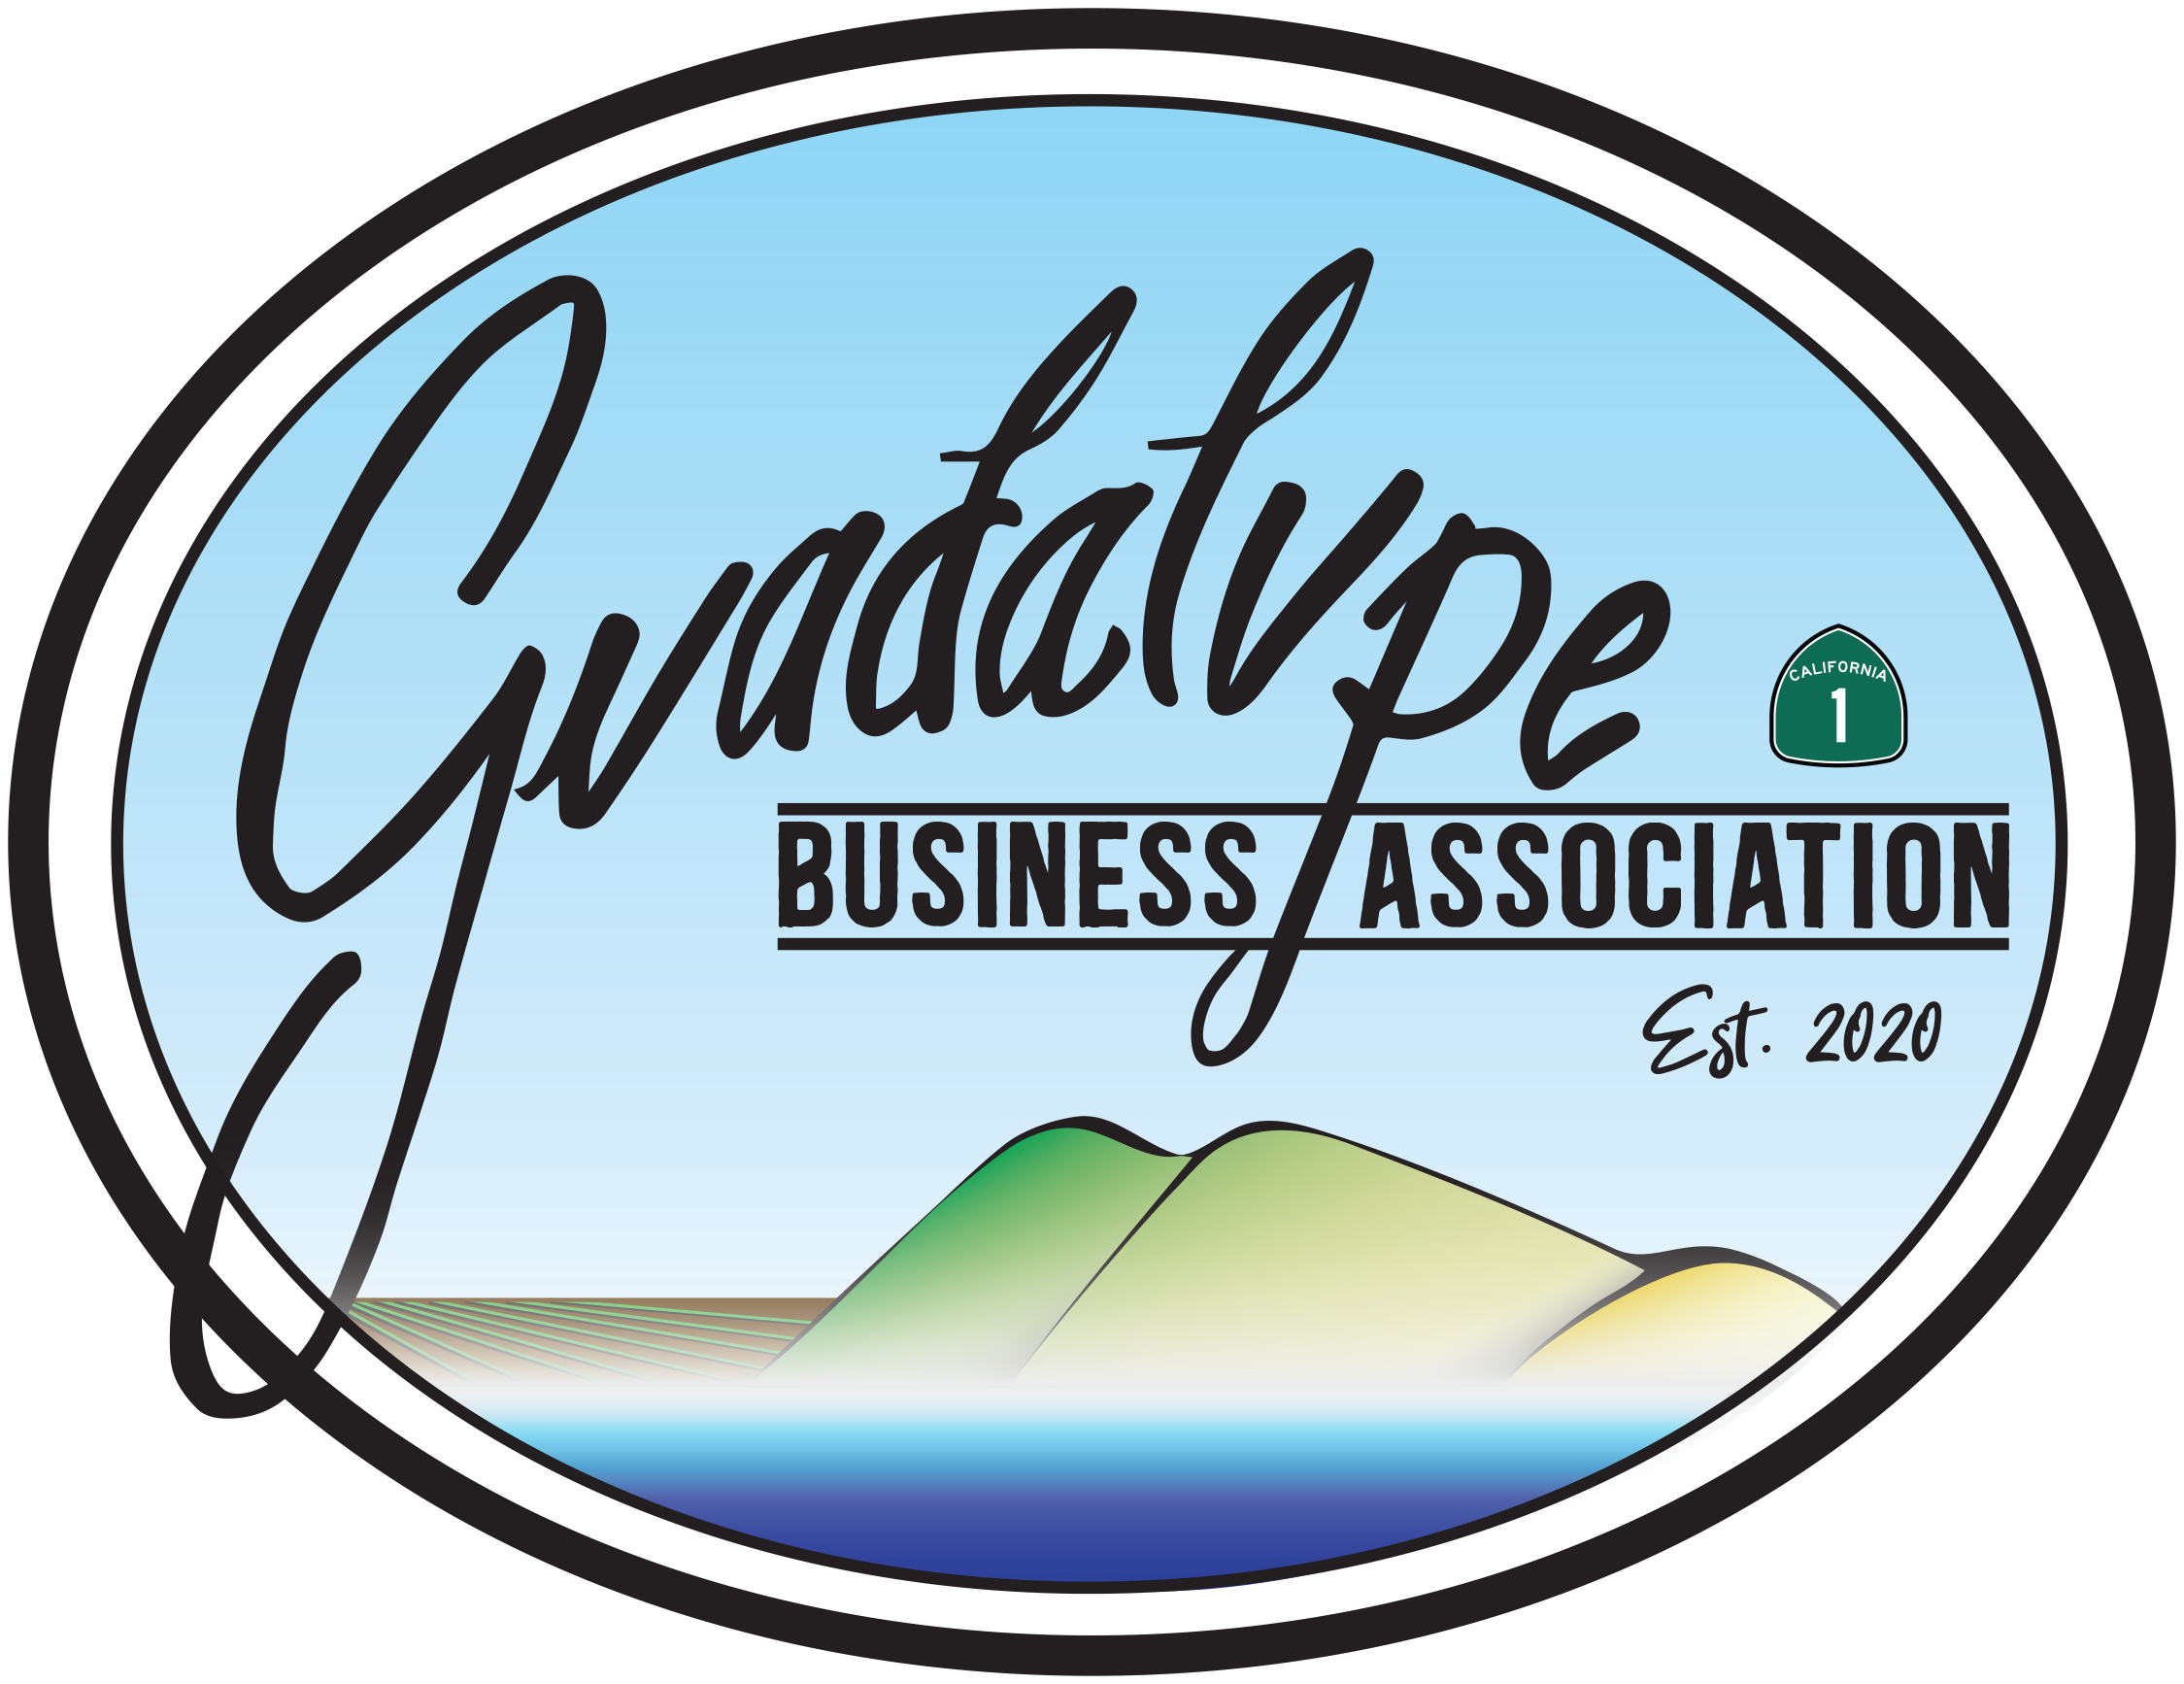 Guadalupe Business Association